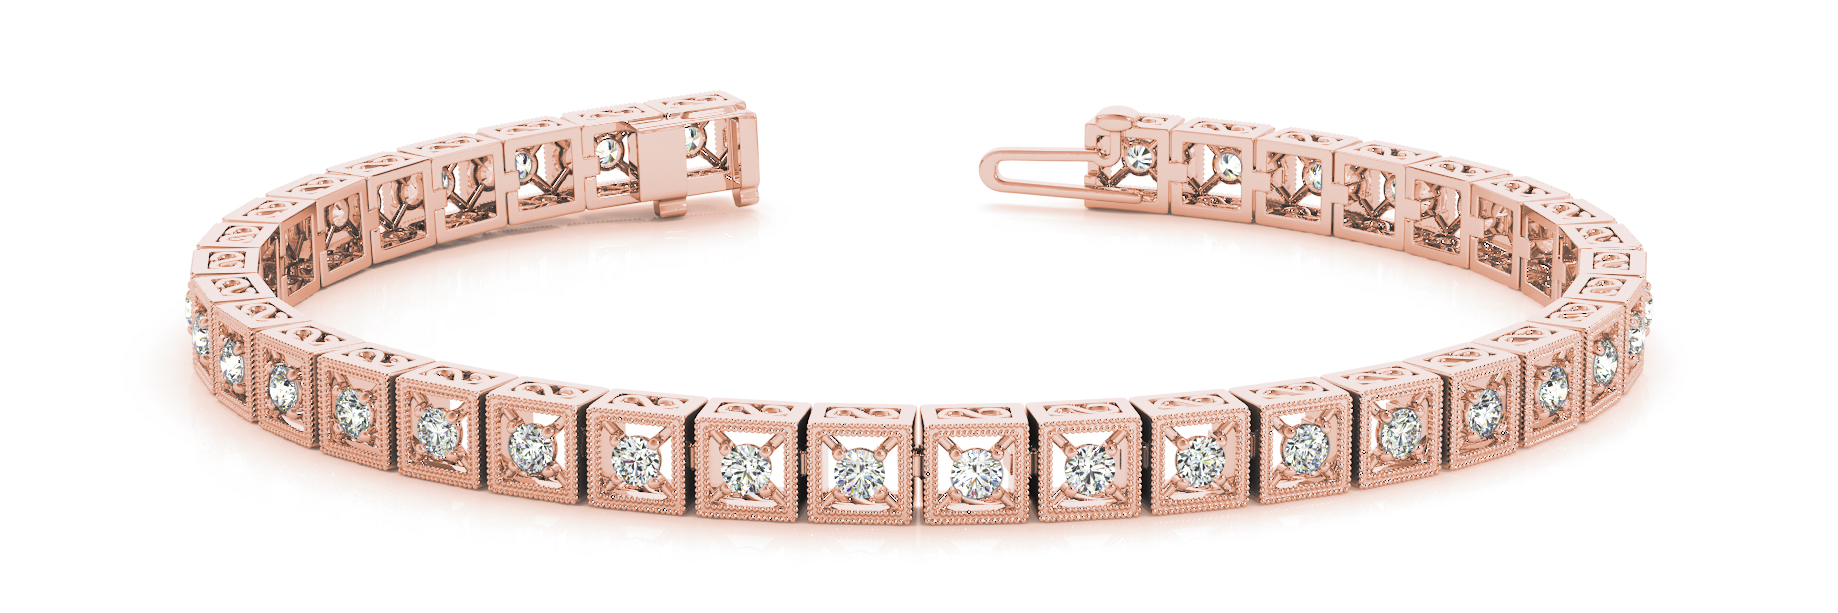 1.08 Carat Round Diamond Square Filigree Rose Gold Bracelet